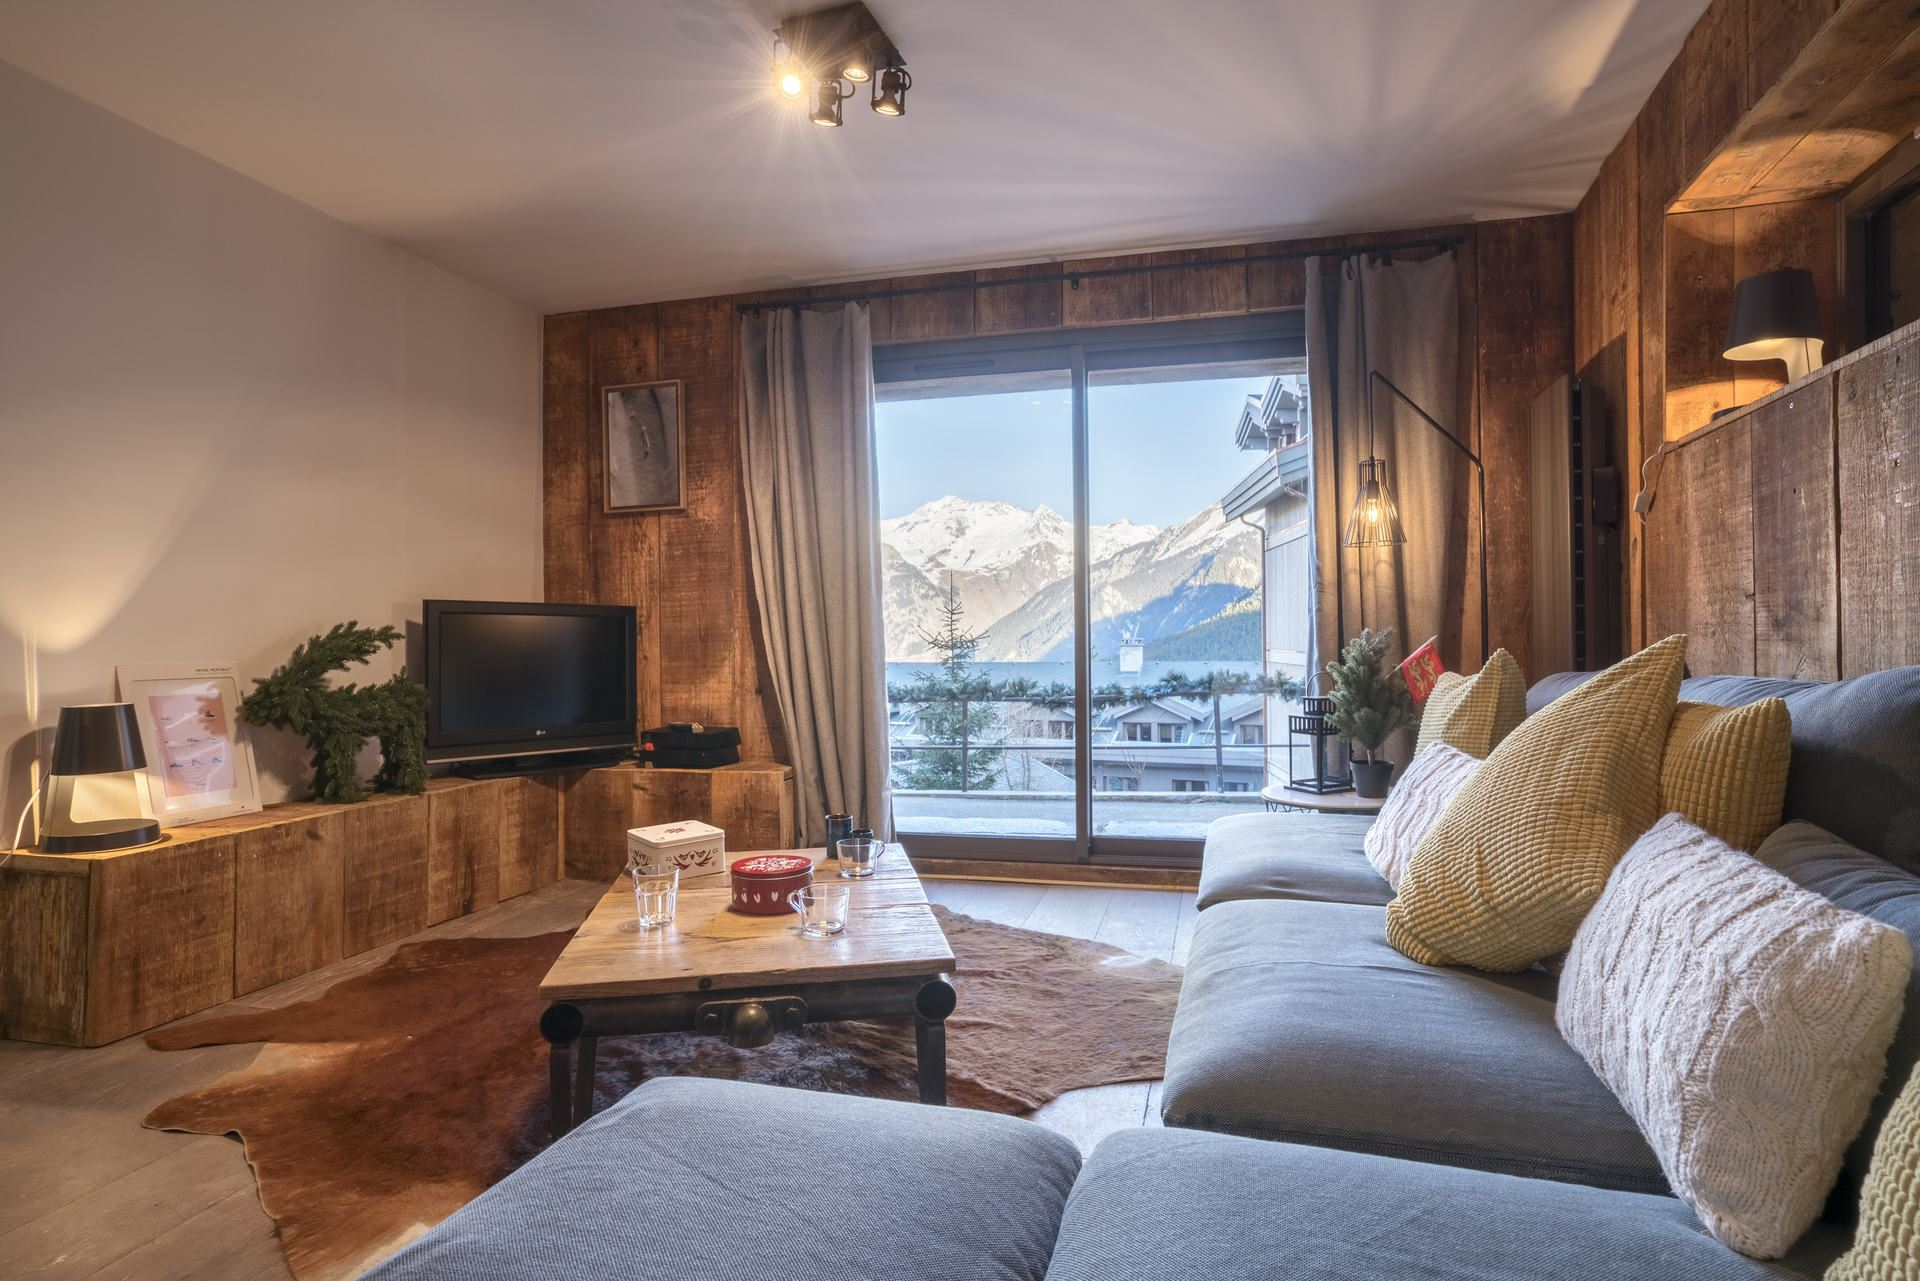 4 rooms Duplex 6 people / Chalet Bambi (mountain of Charm)